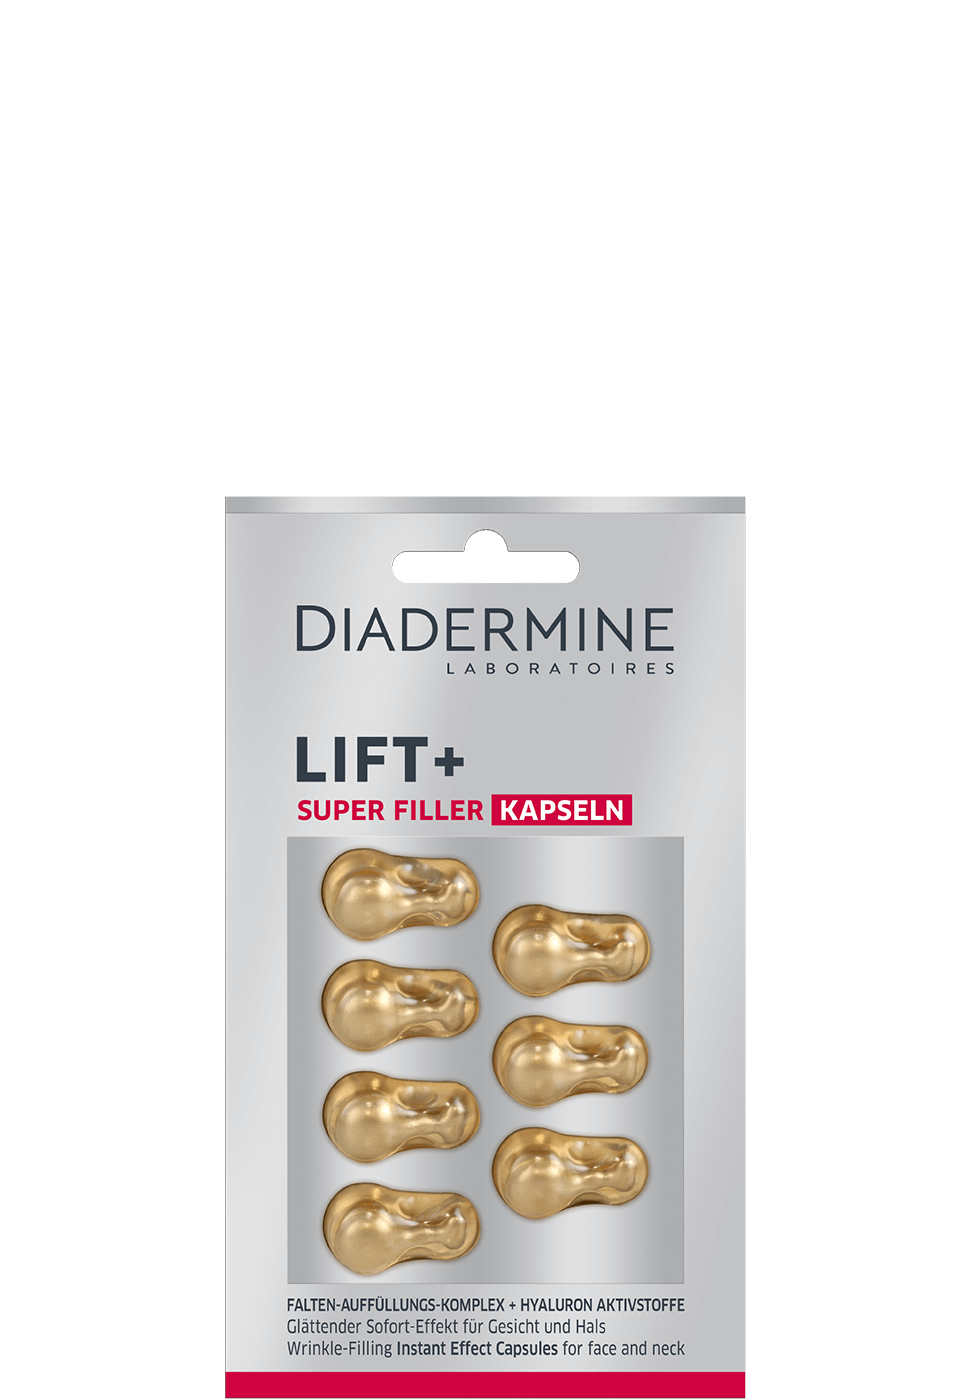 diadermine_at_lift_plus_super_filler_kapseln_970x1400